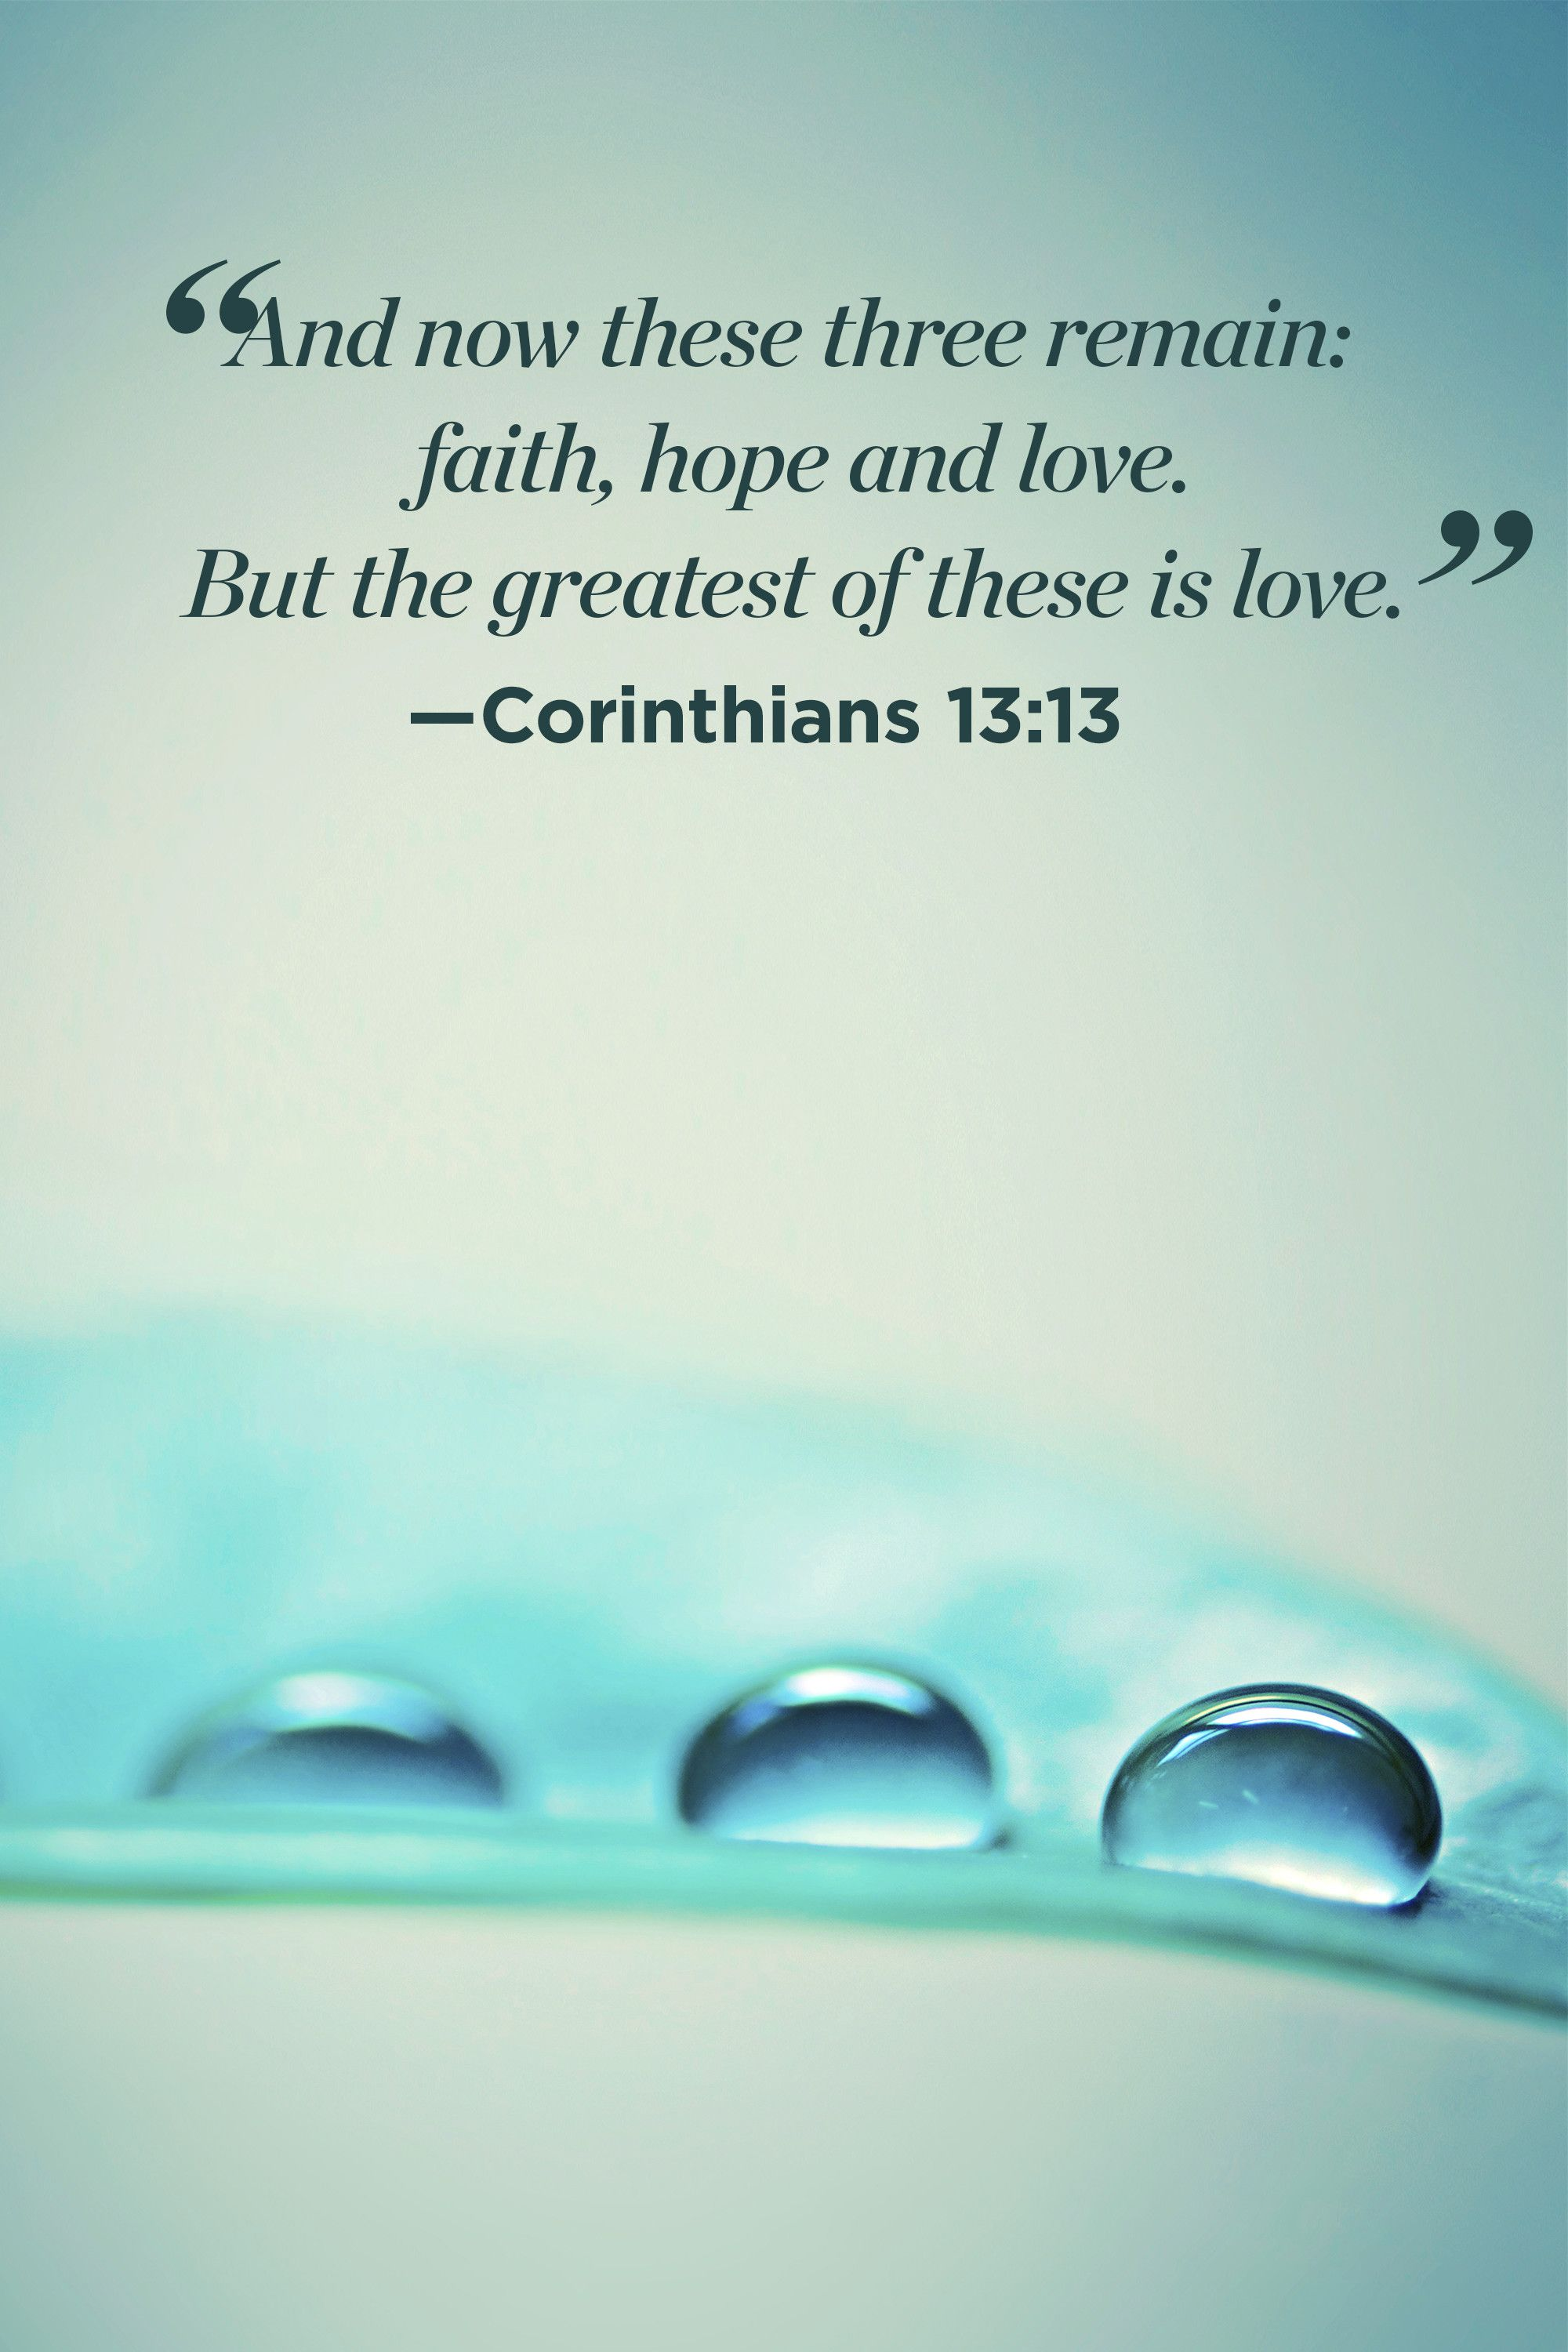 30 Inspirational Bible Quotes About Life - Scripture Verses of the Day